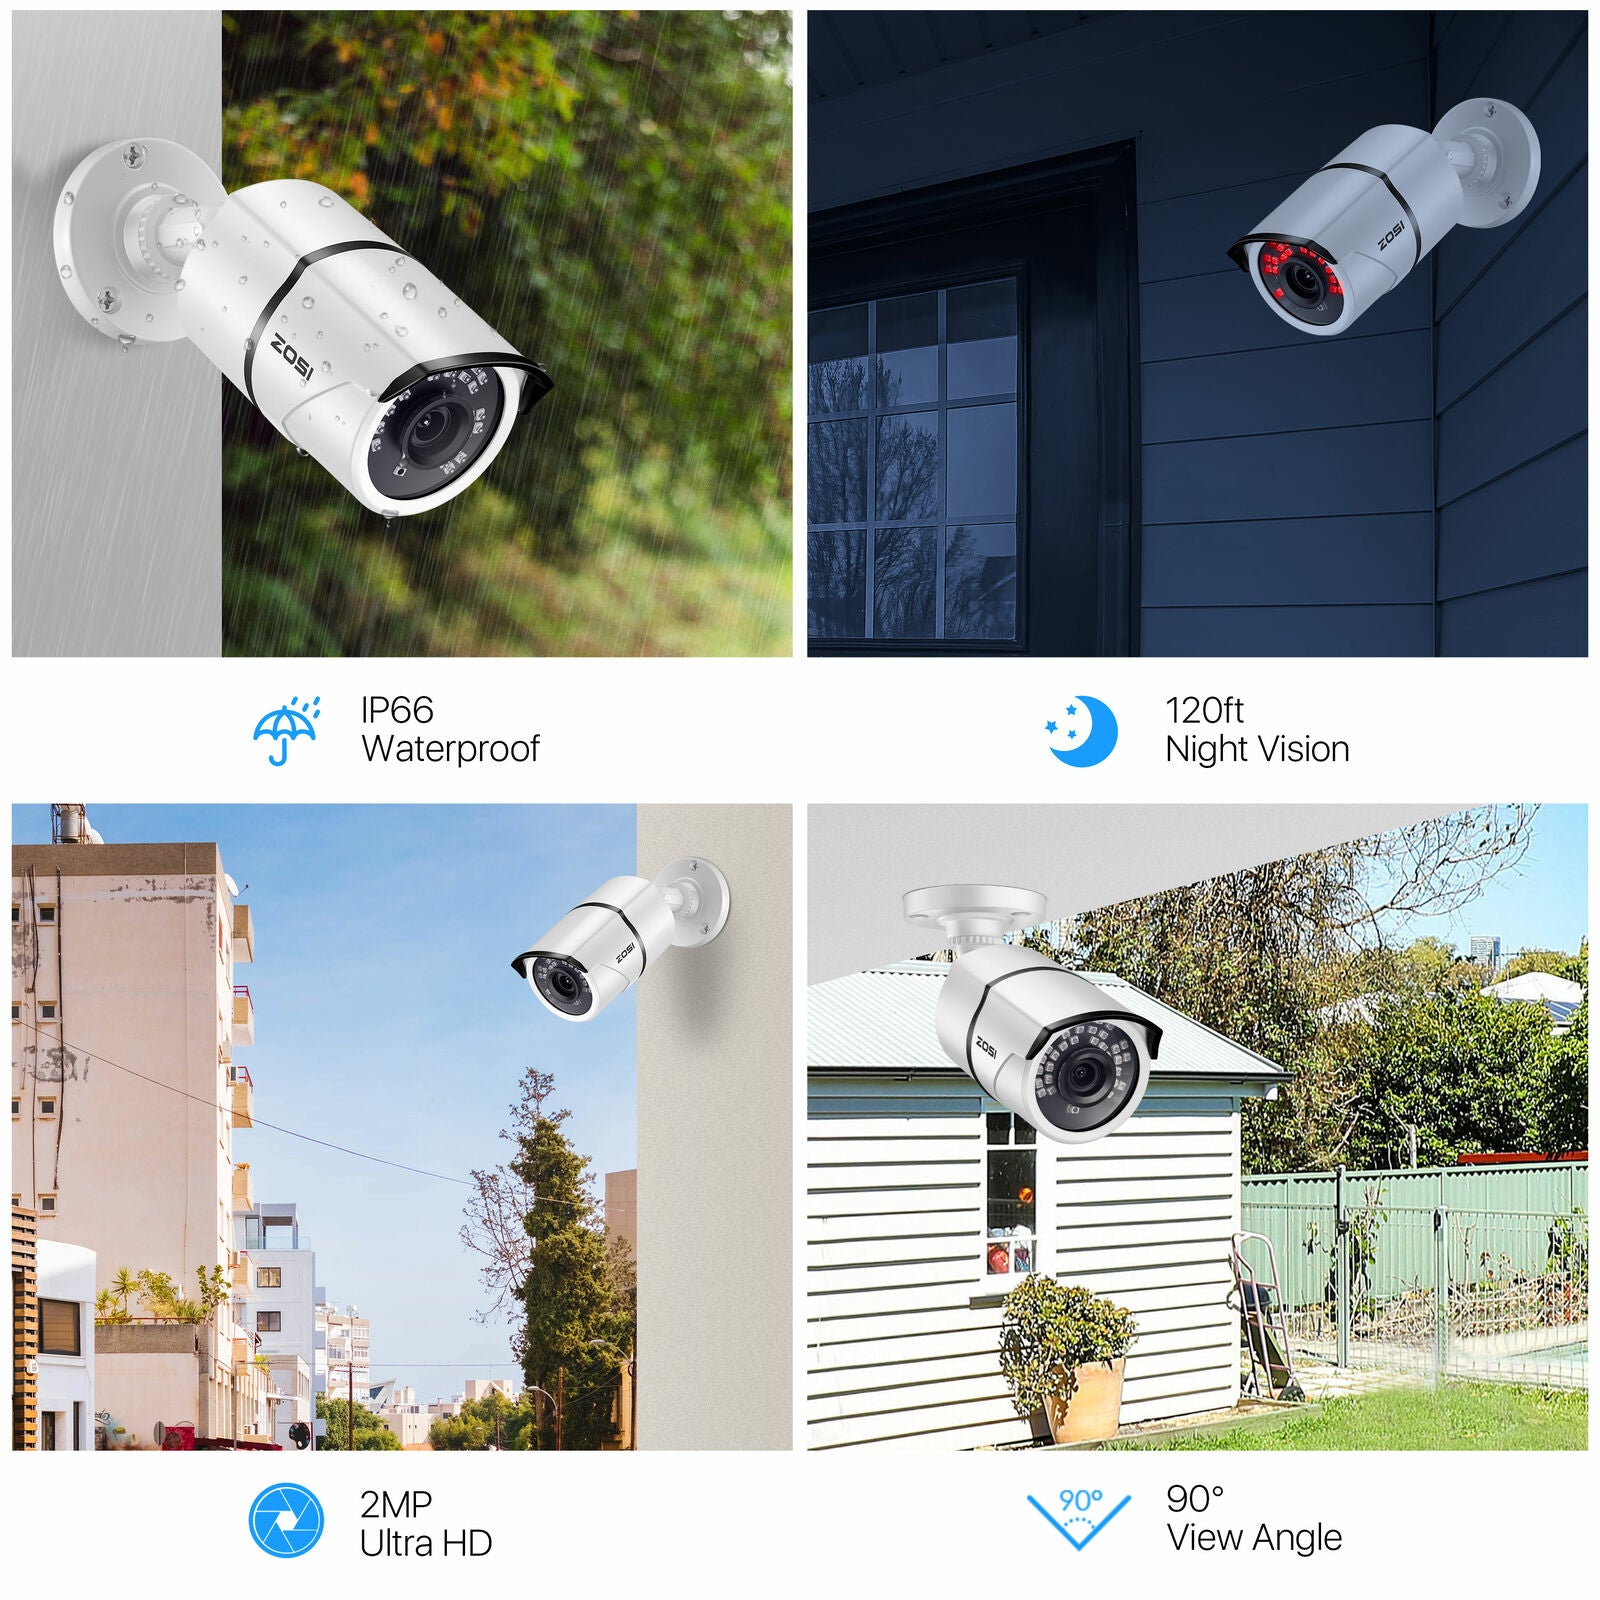 8 Channel 1080P Security System, H.265+ Video Compression, Weatherproof IP66 Bullet Camera